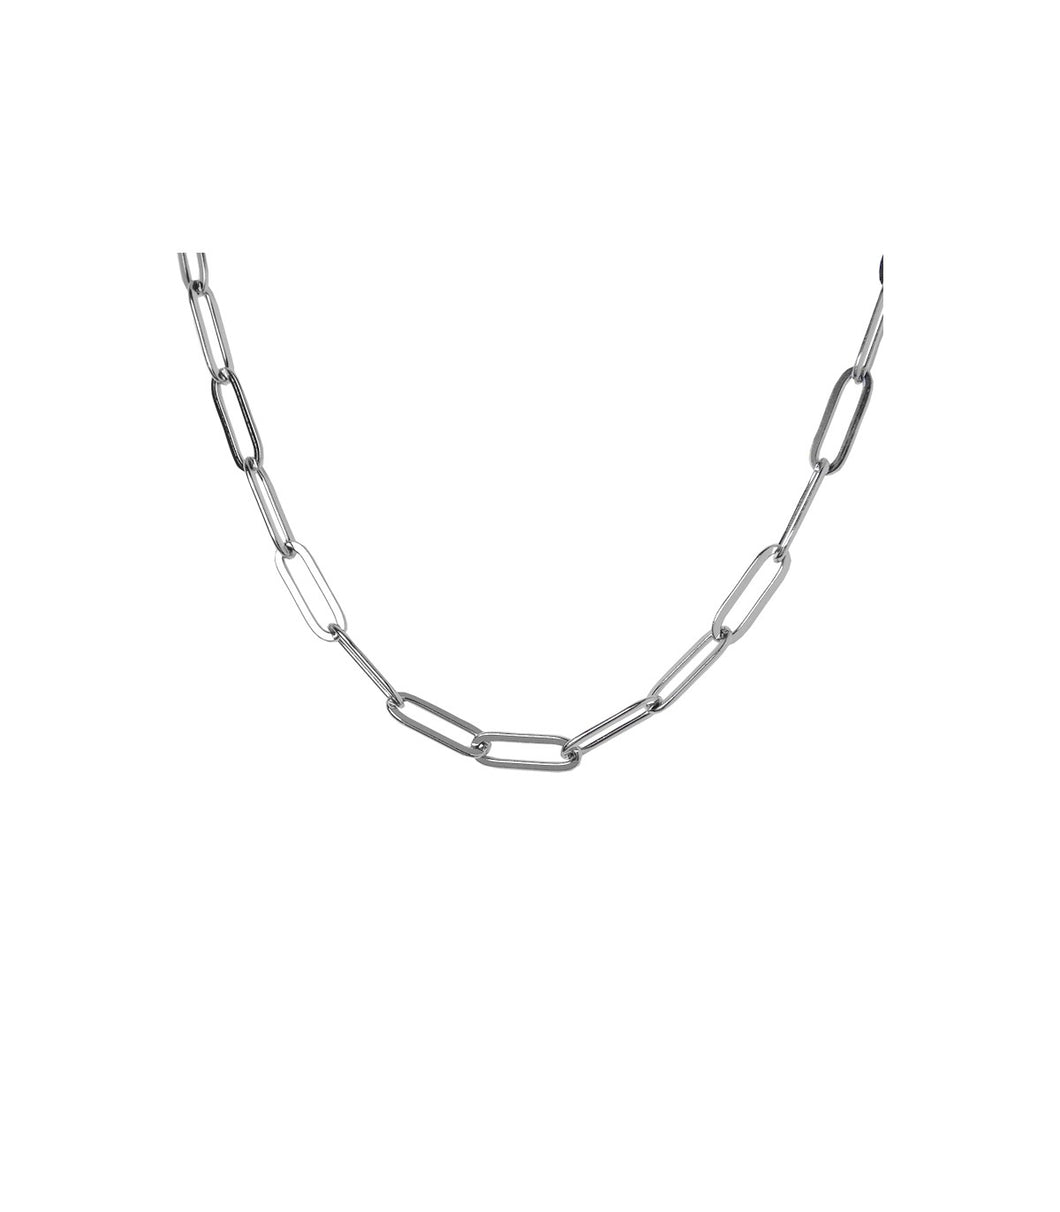 PILA : collier court maille rectangle acier inoxydable